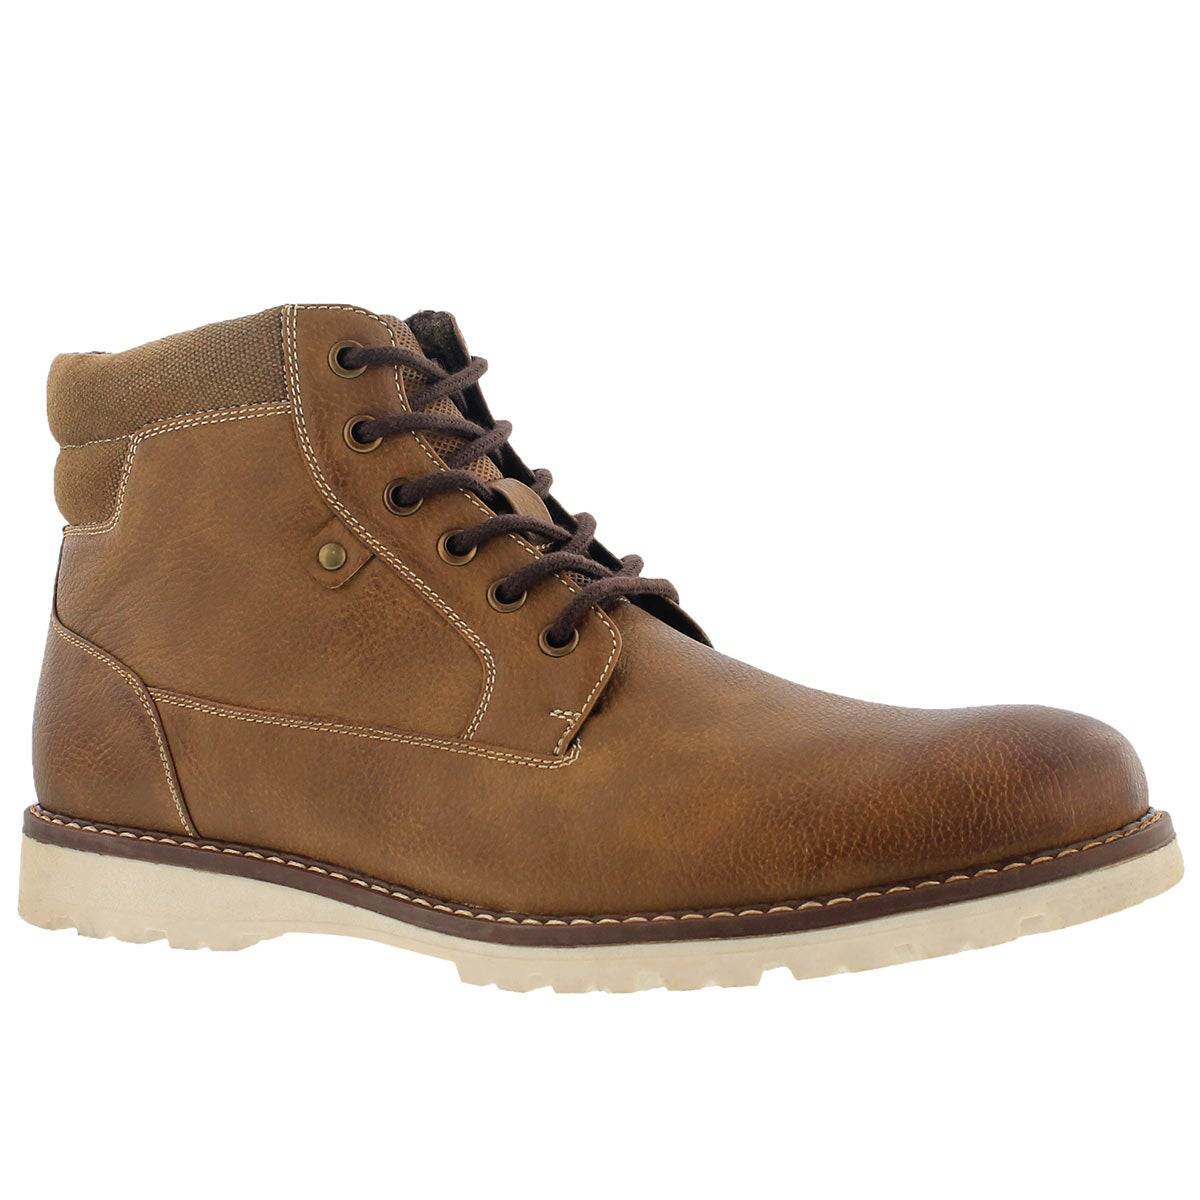 Men's HALLWAY cognac lace up ankle boots